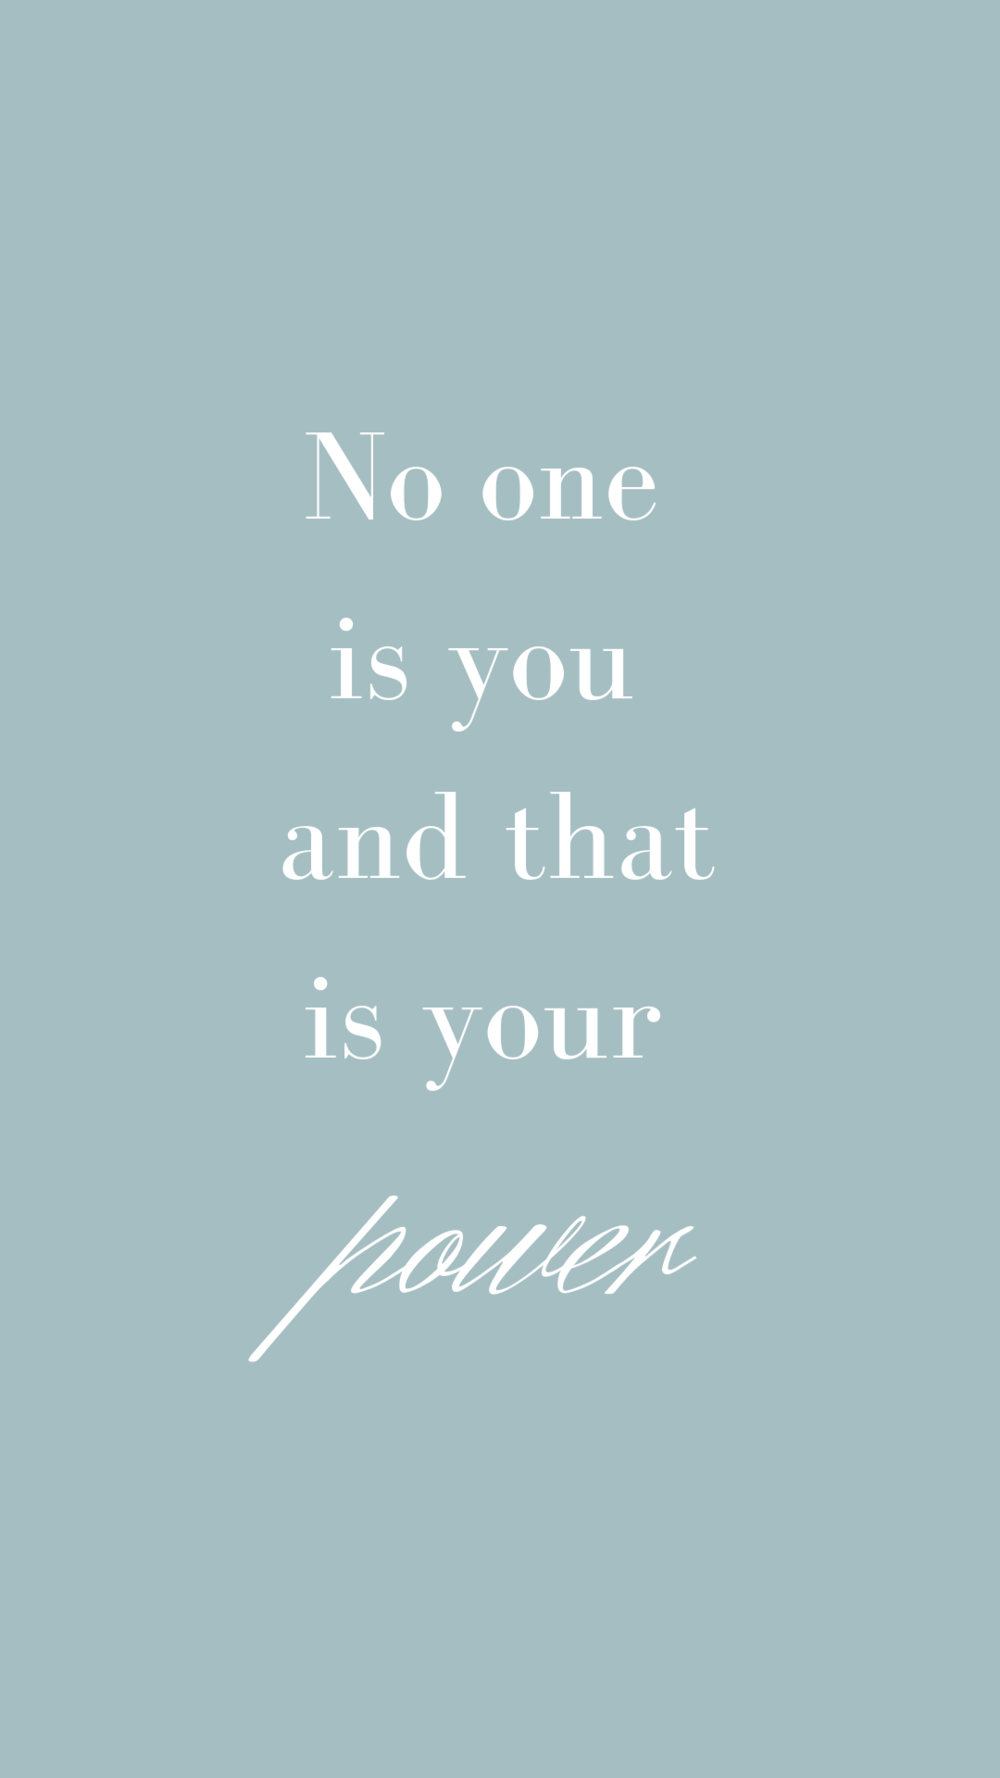 No one is you and that is your power | Empowering Quotes for Your Phone Screen Background | Miranda Schroeder Blog | www.mirandaschroeder.com